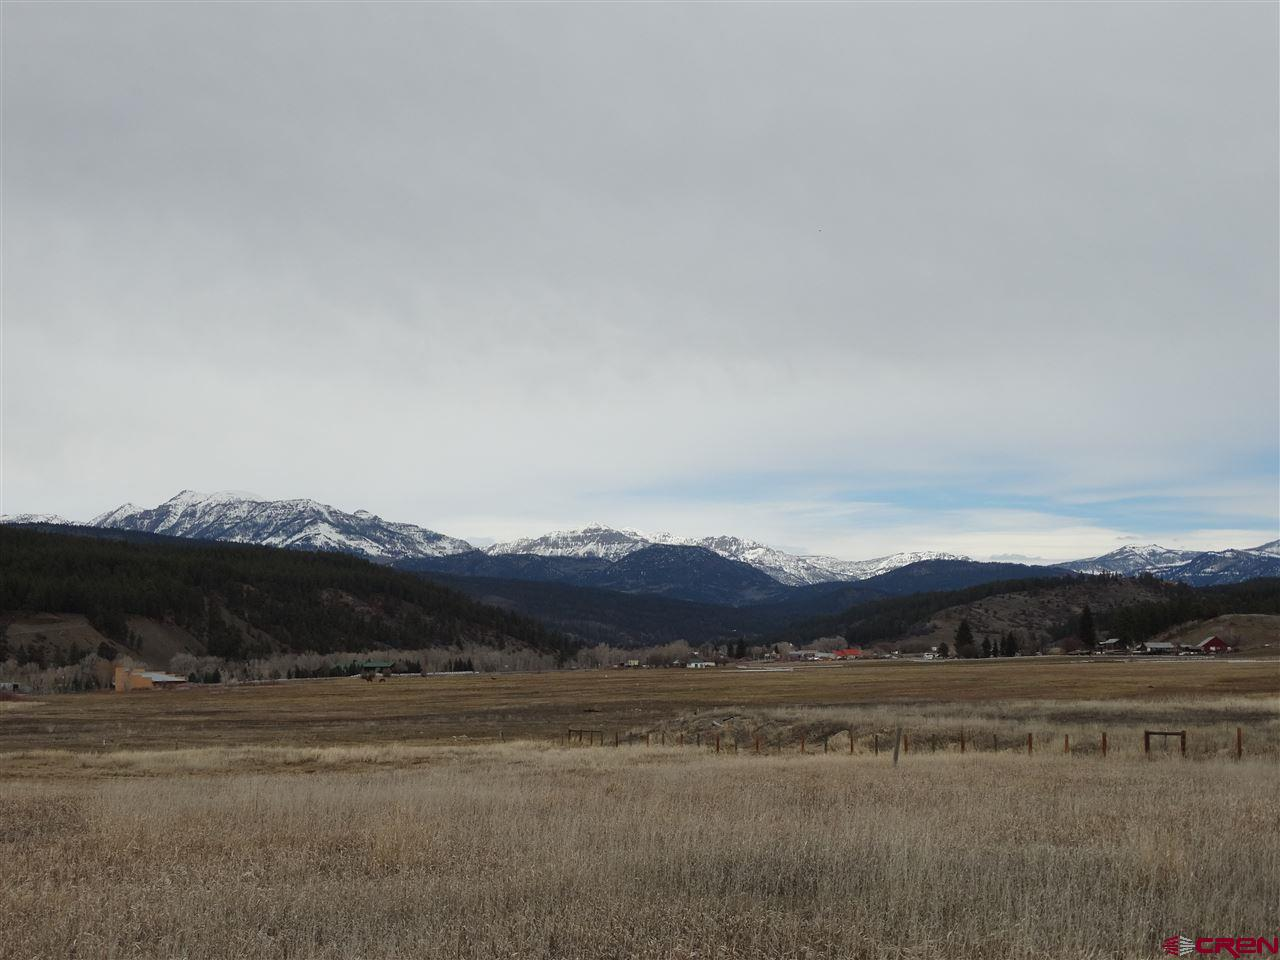 321 Highway 84, Pagosa Springs, Colorado 81147, ,Commercial,For Sale,321 Highway 84,767848